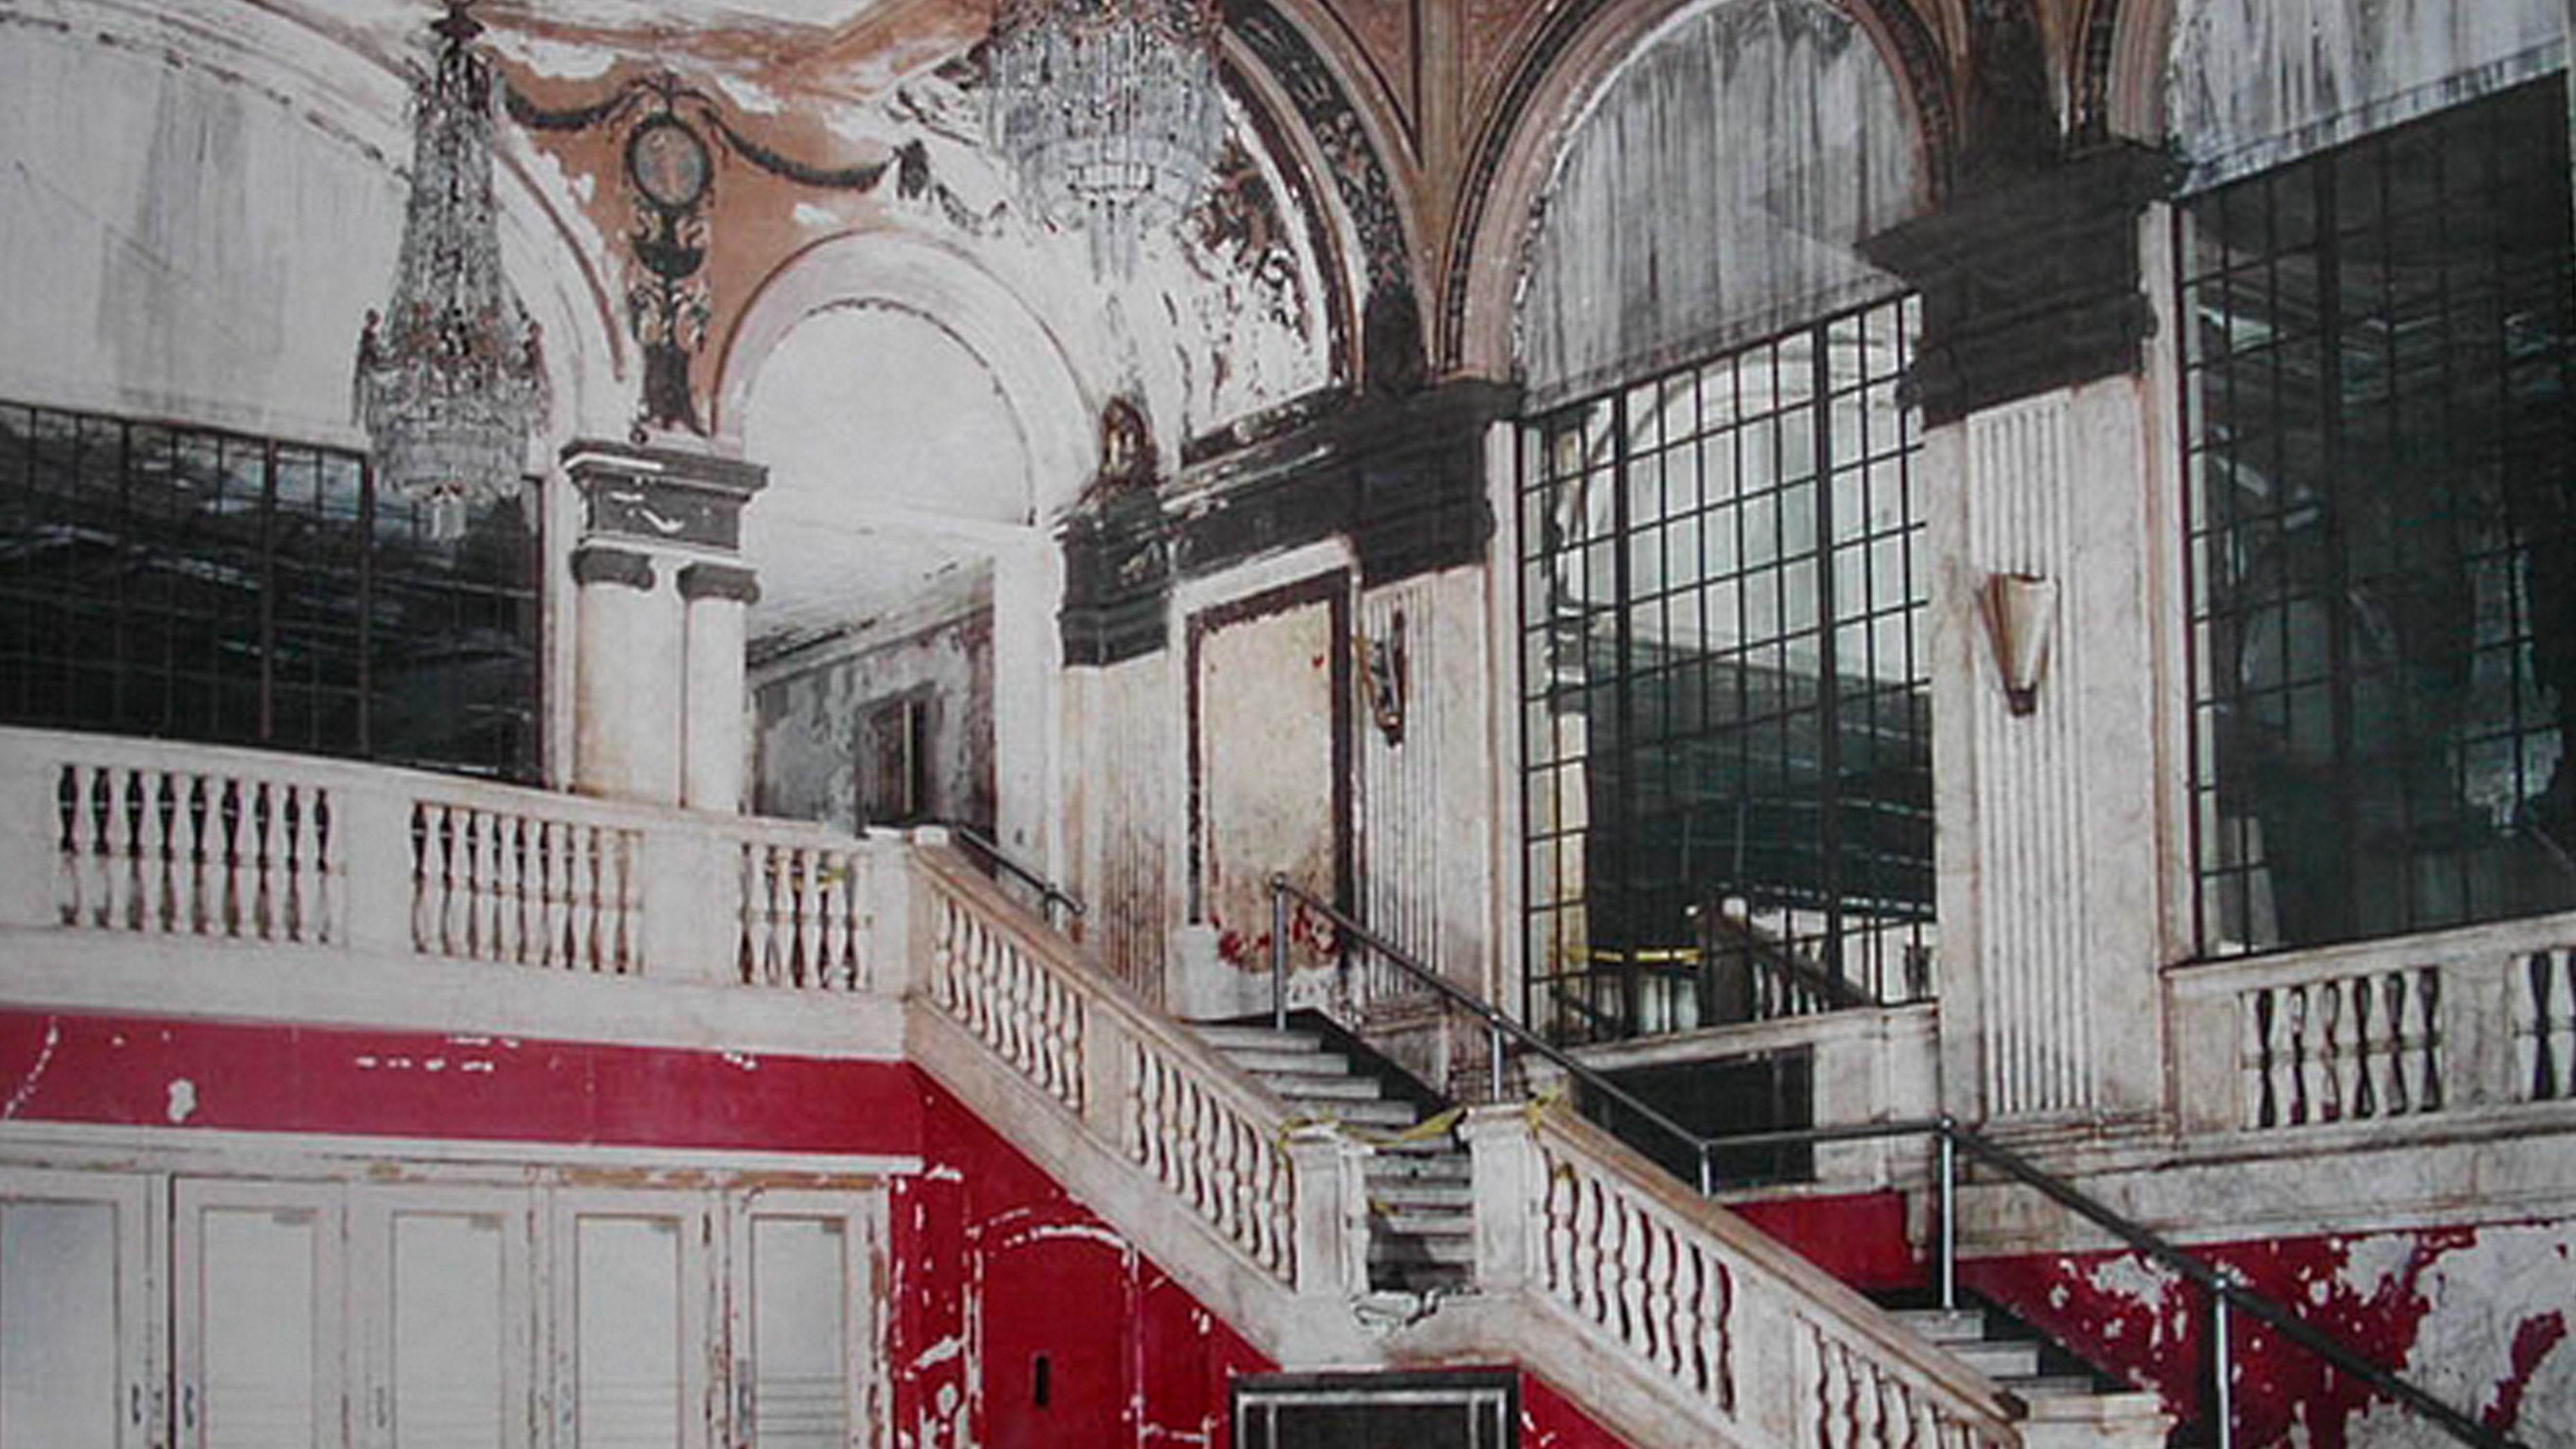 The interior of The Palace Theater in Waterbury CT before restoration efforts began